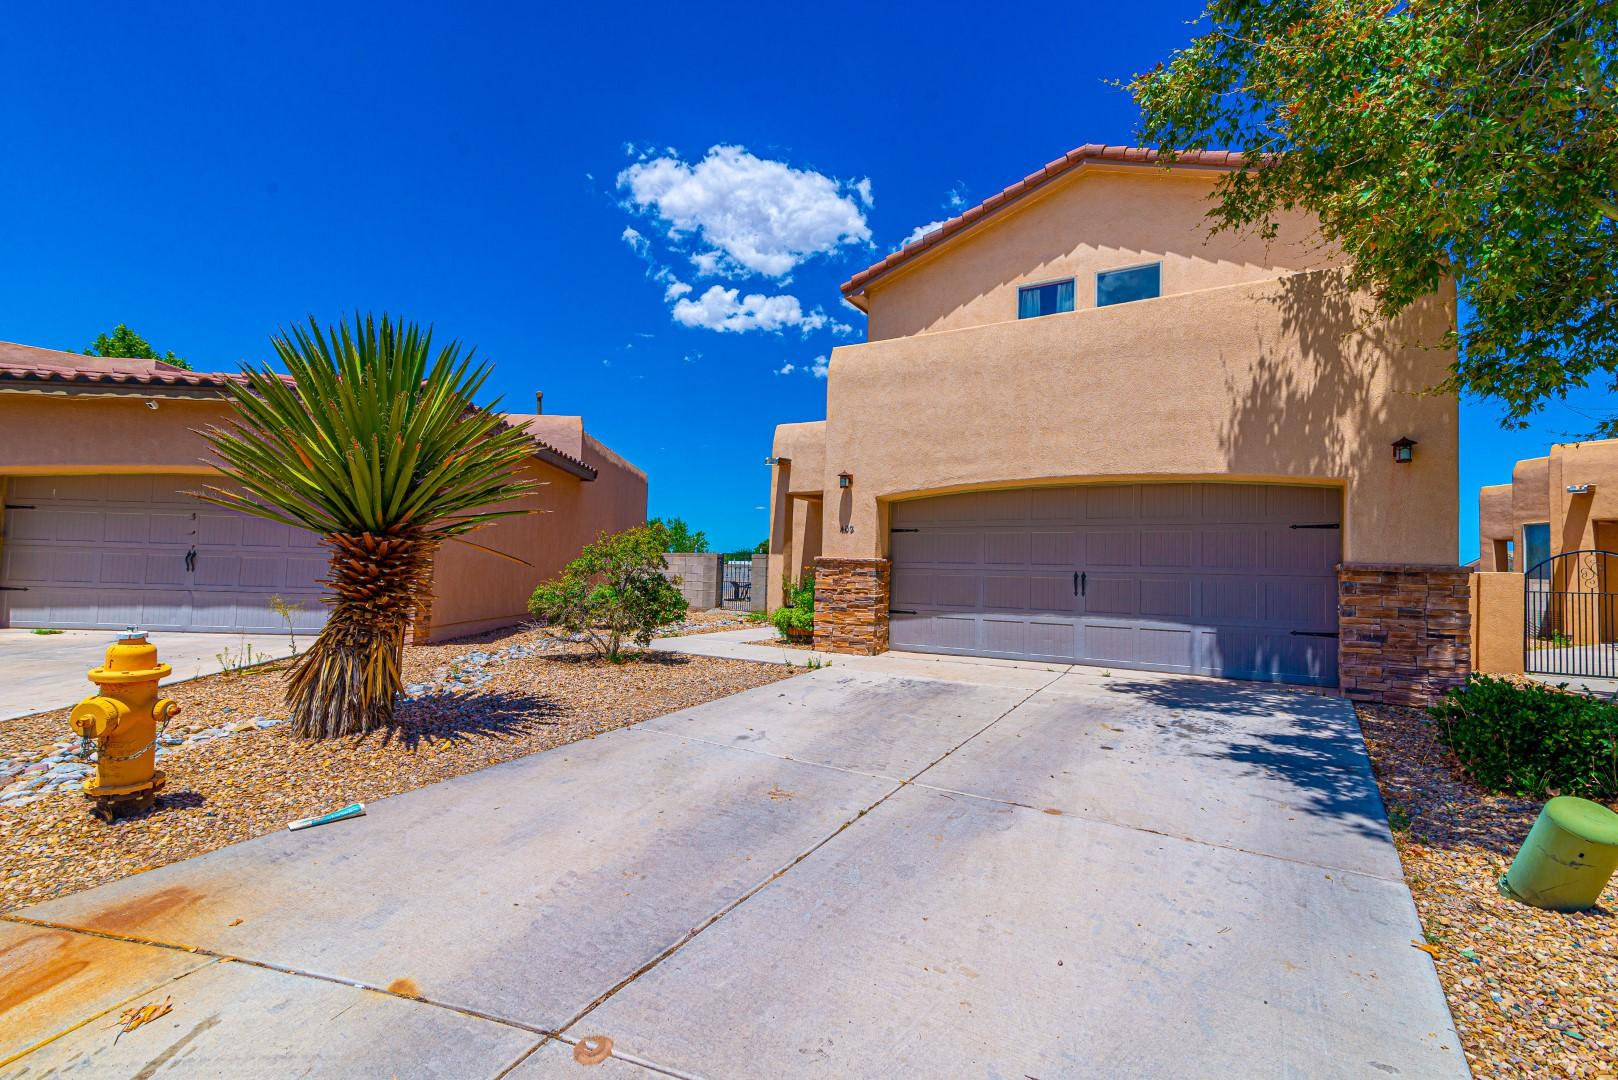 Great  Los Lunas location in beautiful Coronado Estates.  Tuscan-style home with refrigerated air, ceramic tile, central vac system, 9 ft ceilings, walk-in closets, Kiva fireplace and beautiful fixtures.  Enjoy the outdoors on the covered patio in the walled backyard or enjoy the fresh air outside on the balcony. Dogs will love the 16x32 dog run. Easy commute to Albuquerque on nearby Railrunner or easy access to I-25.  Close to all City conveniences.